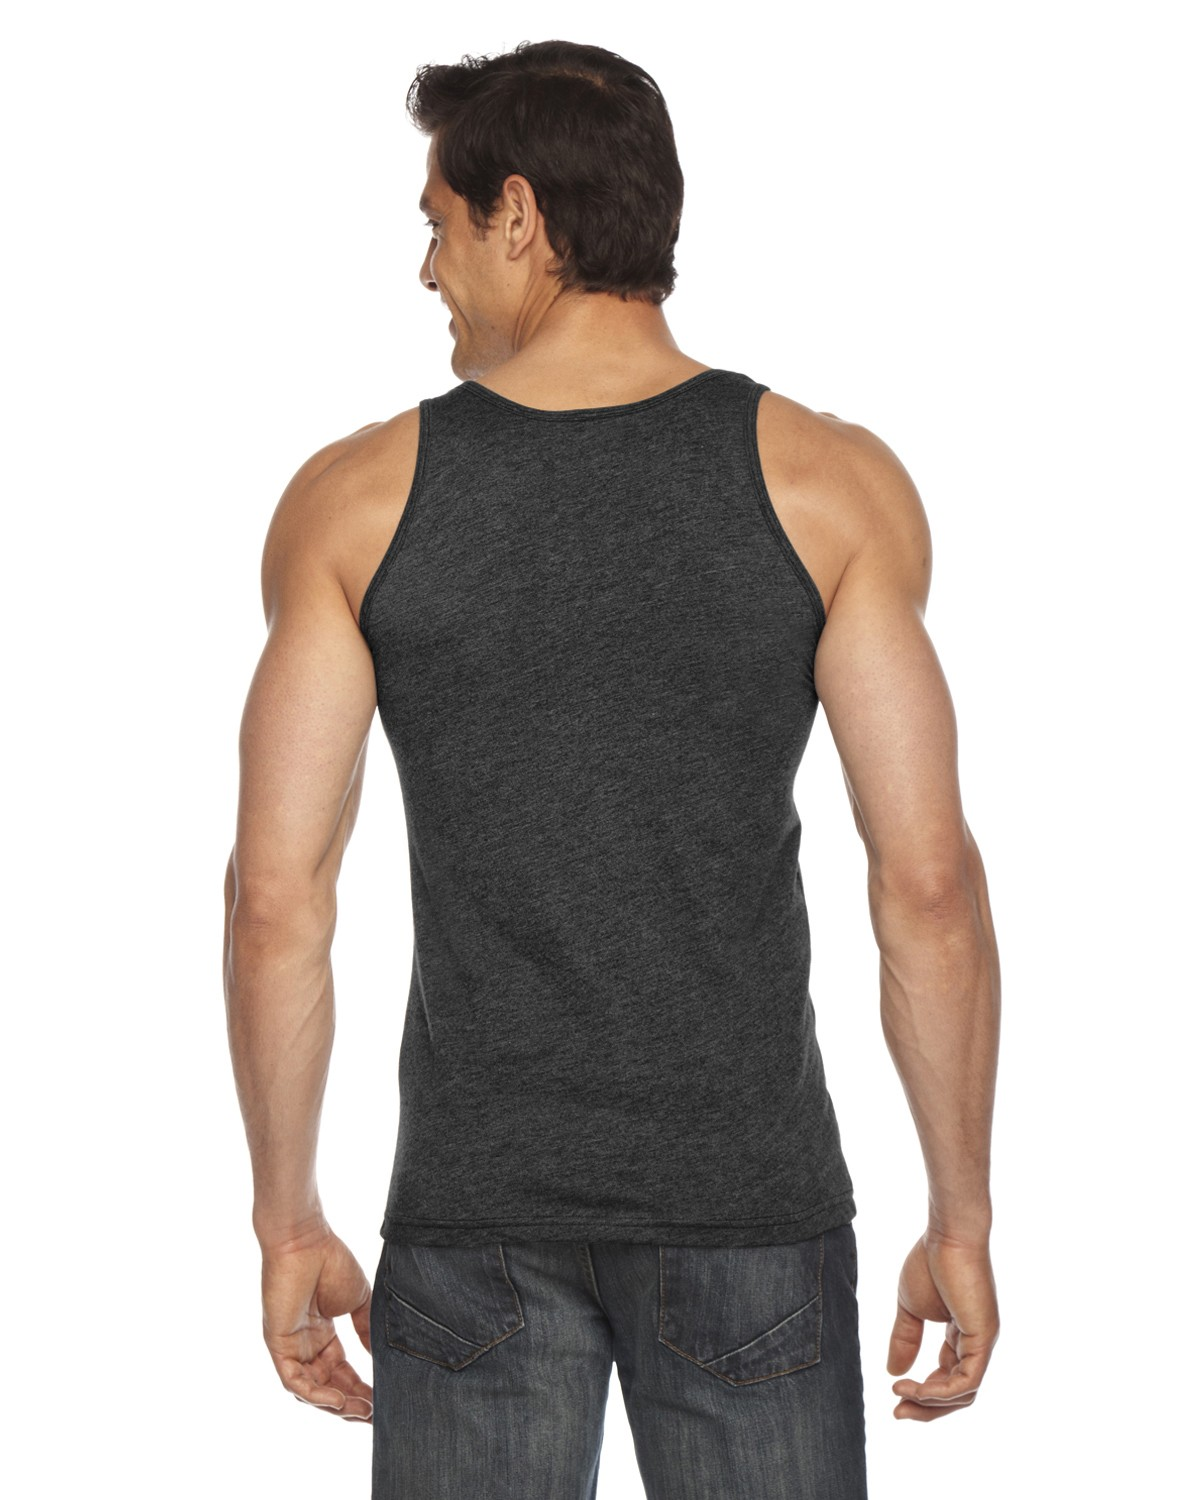 BB408W American Apparel HEATHER BLACK